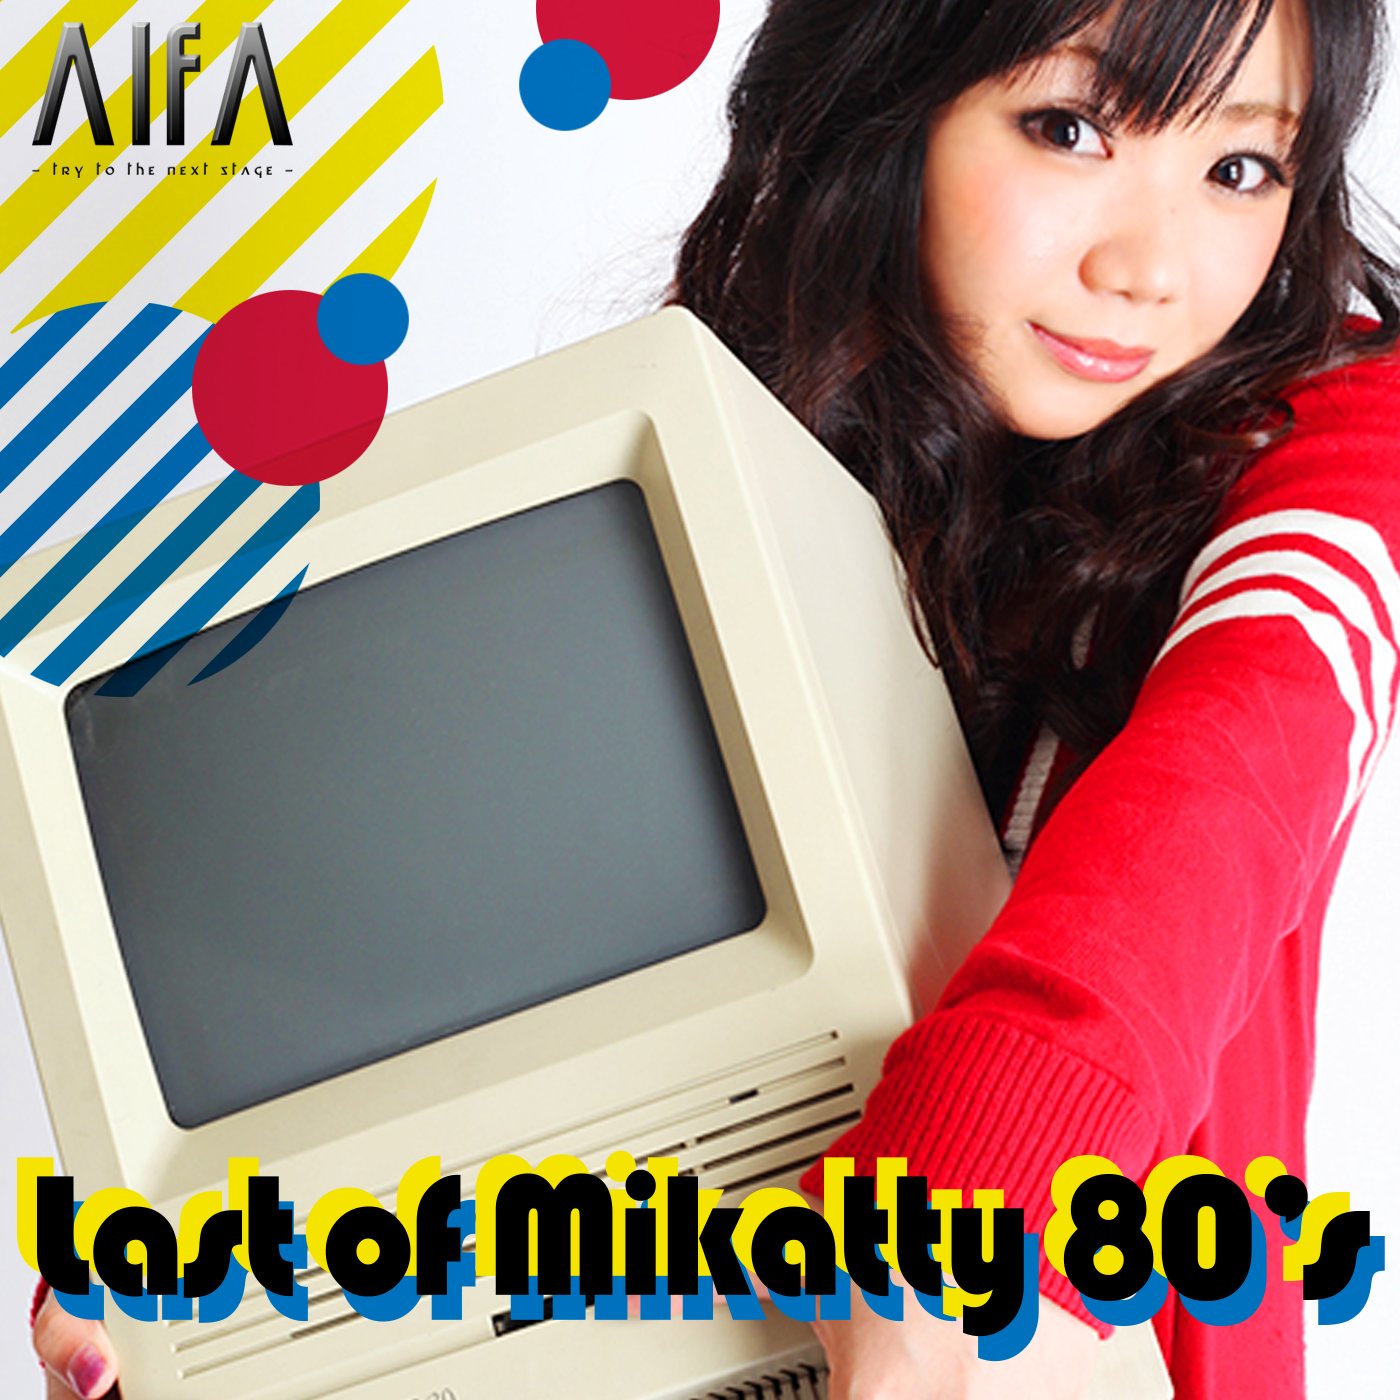 Last of Mikatty 80's - ALFAポッドキャスト